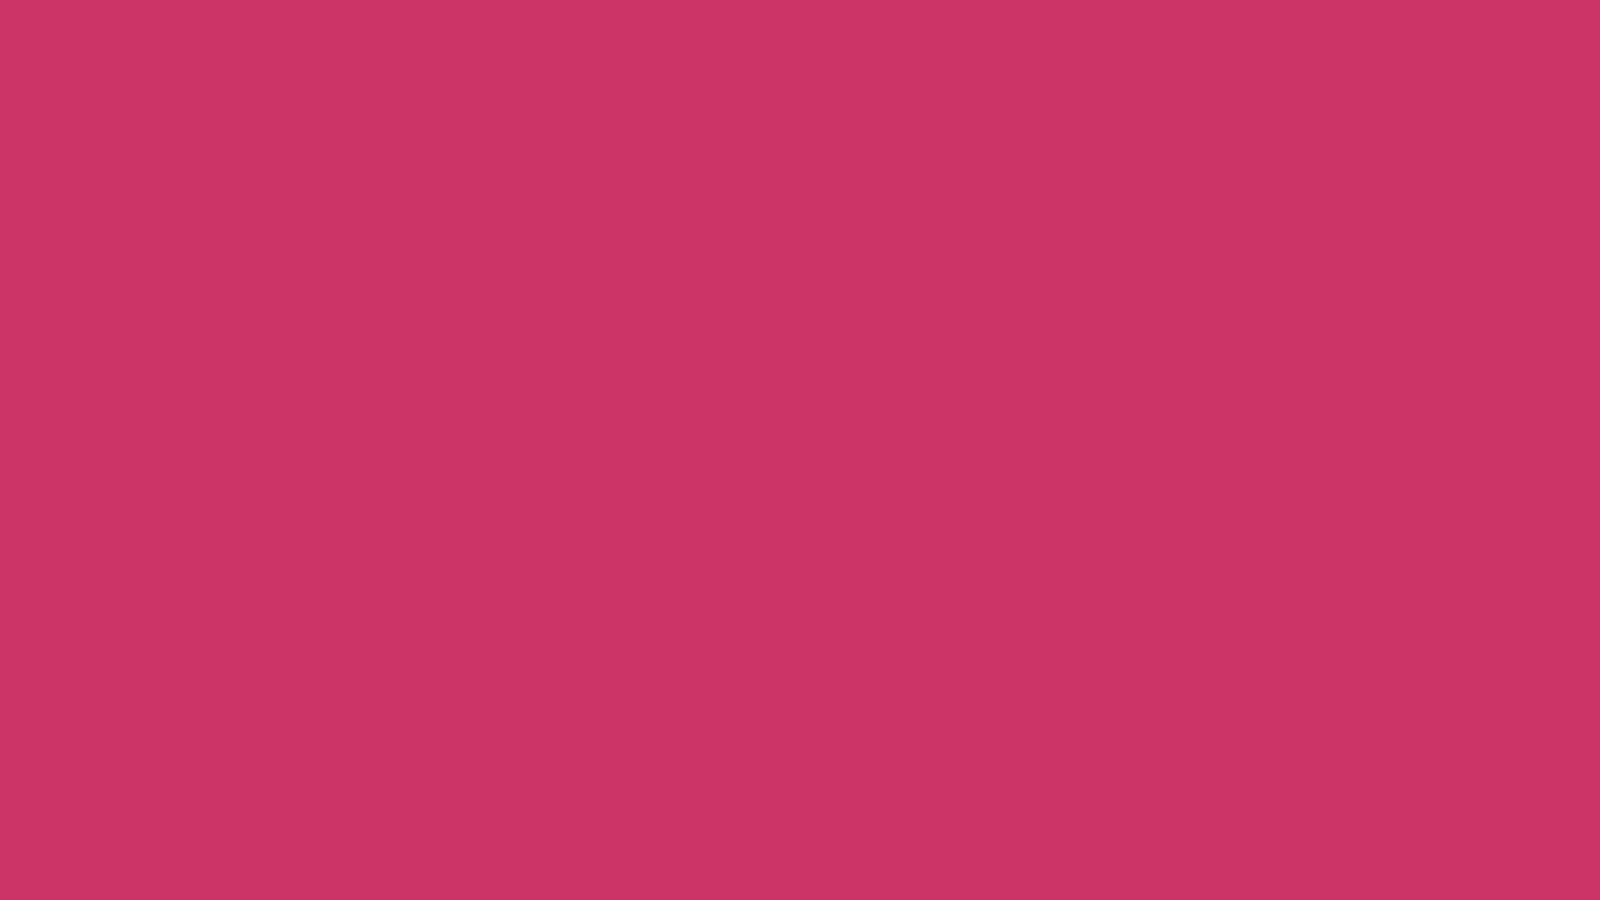 1600x900 Steel Pink Solid Color Background